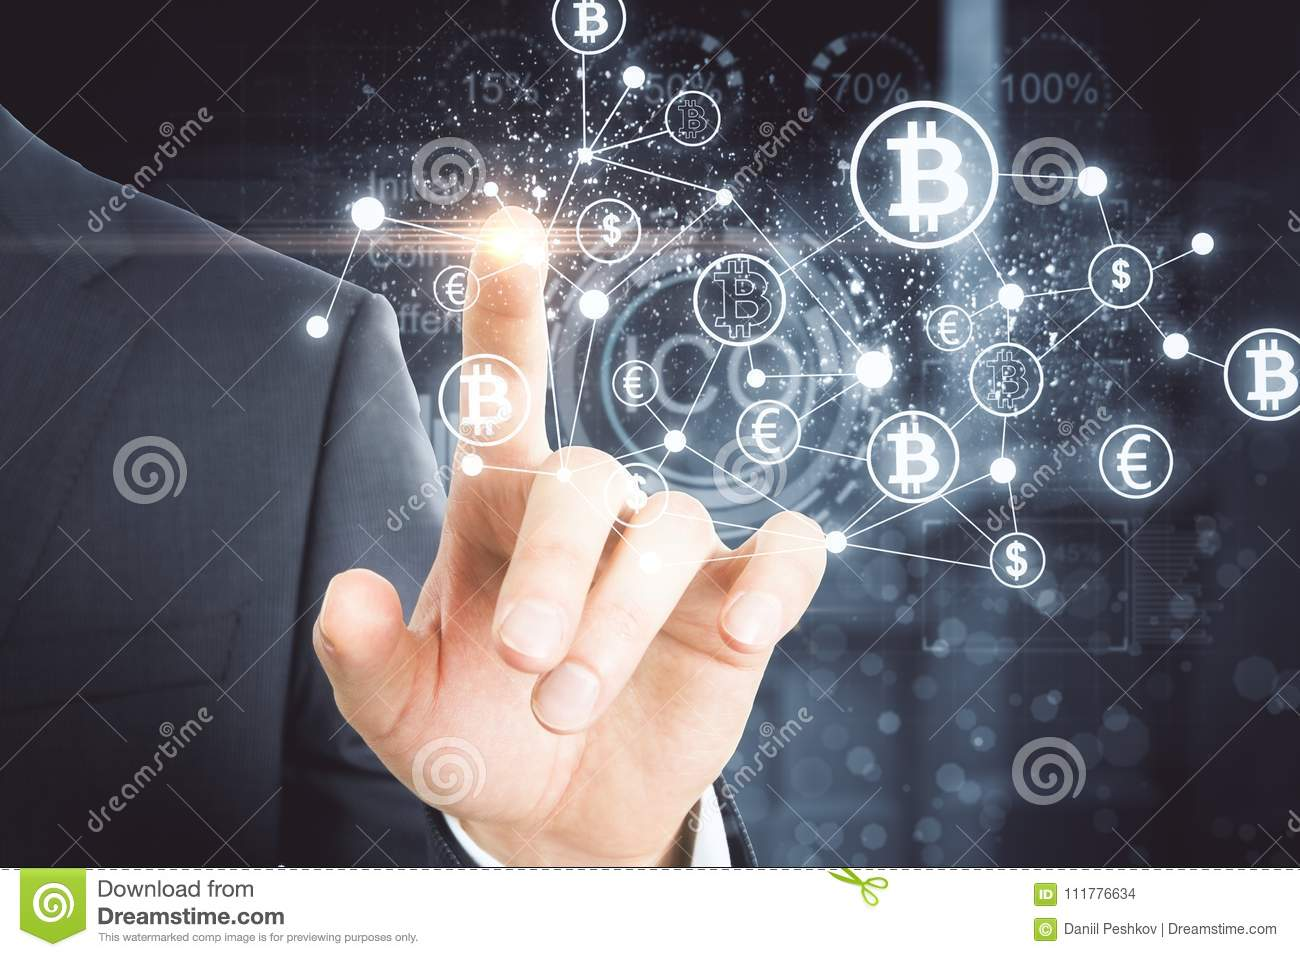 Cryptocurrency and payment concept